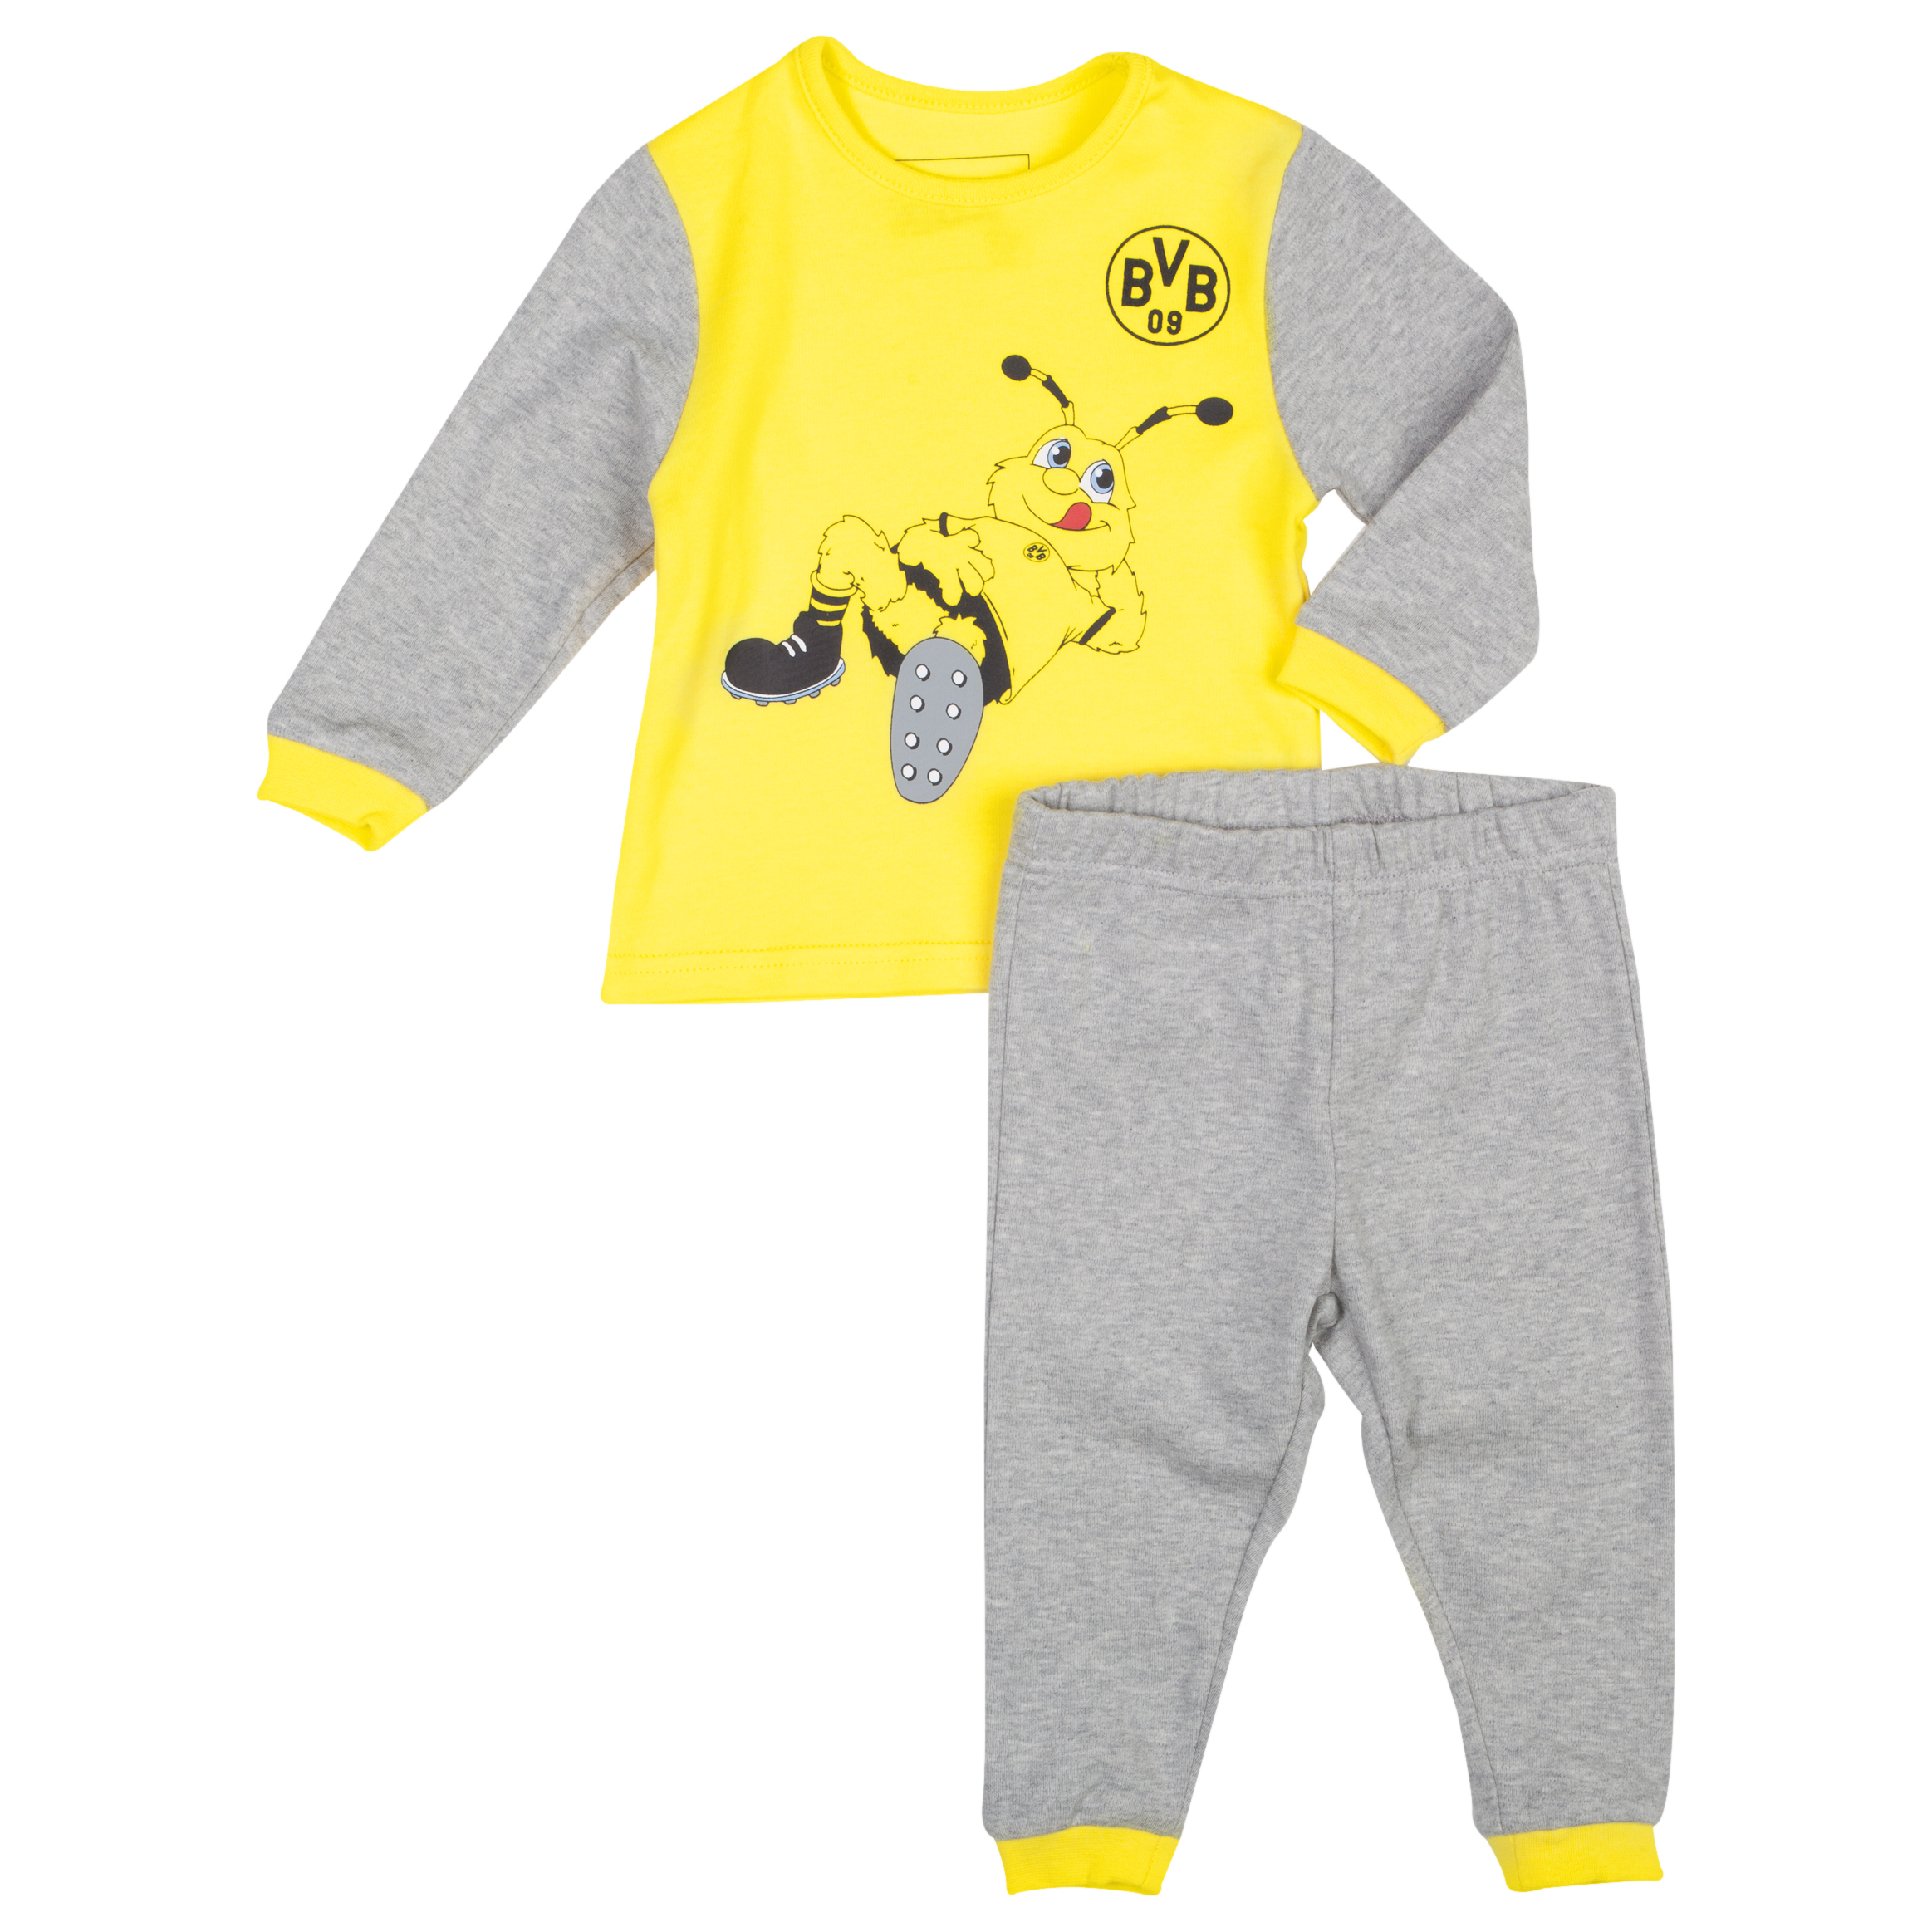 BVB Pyjamas Toddlers Grey